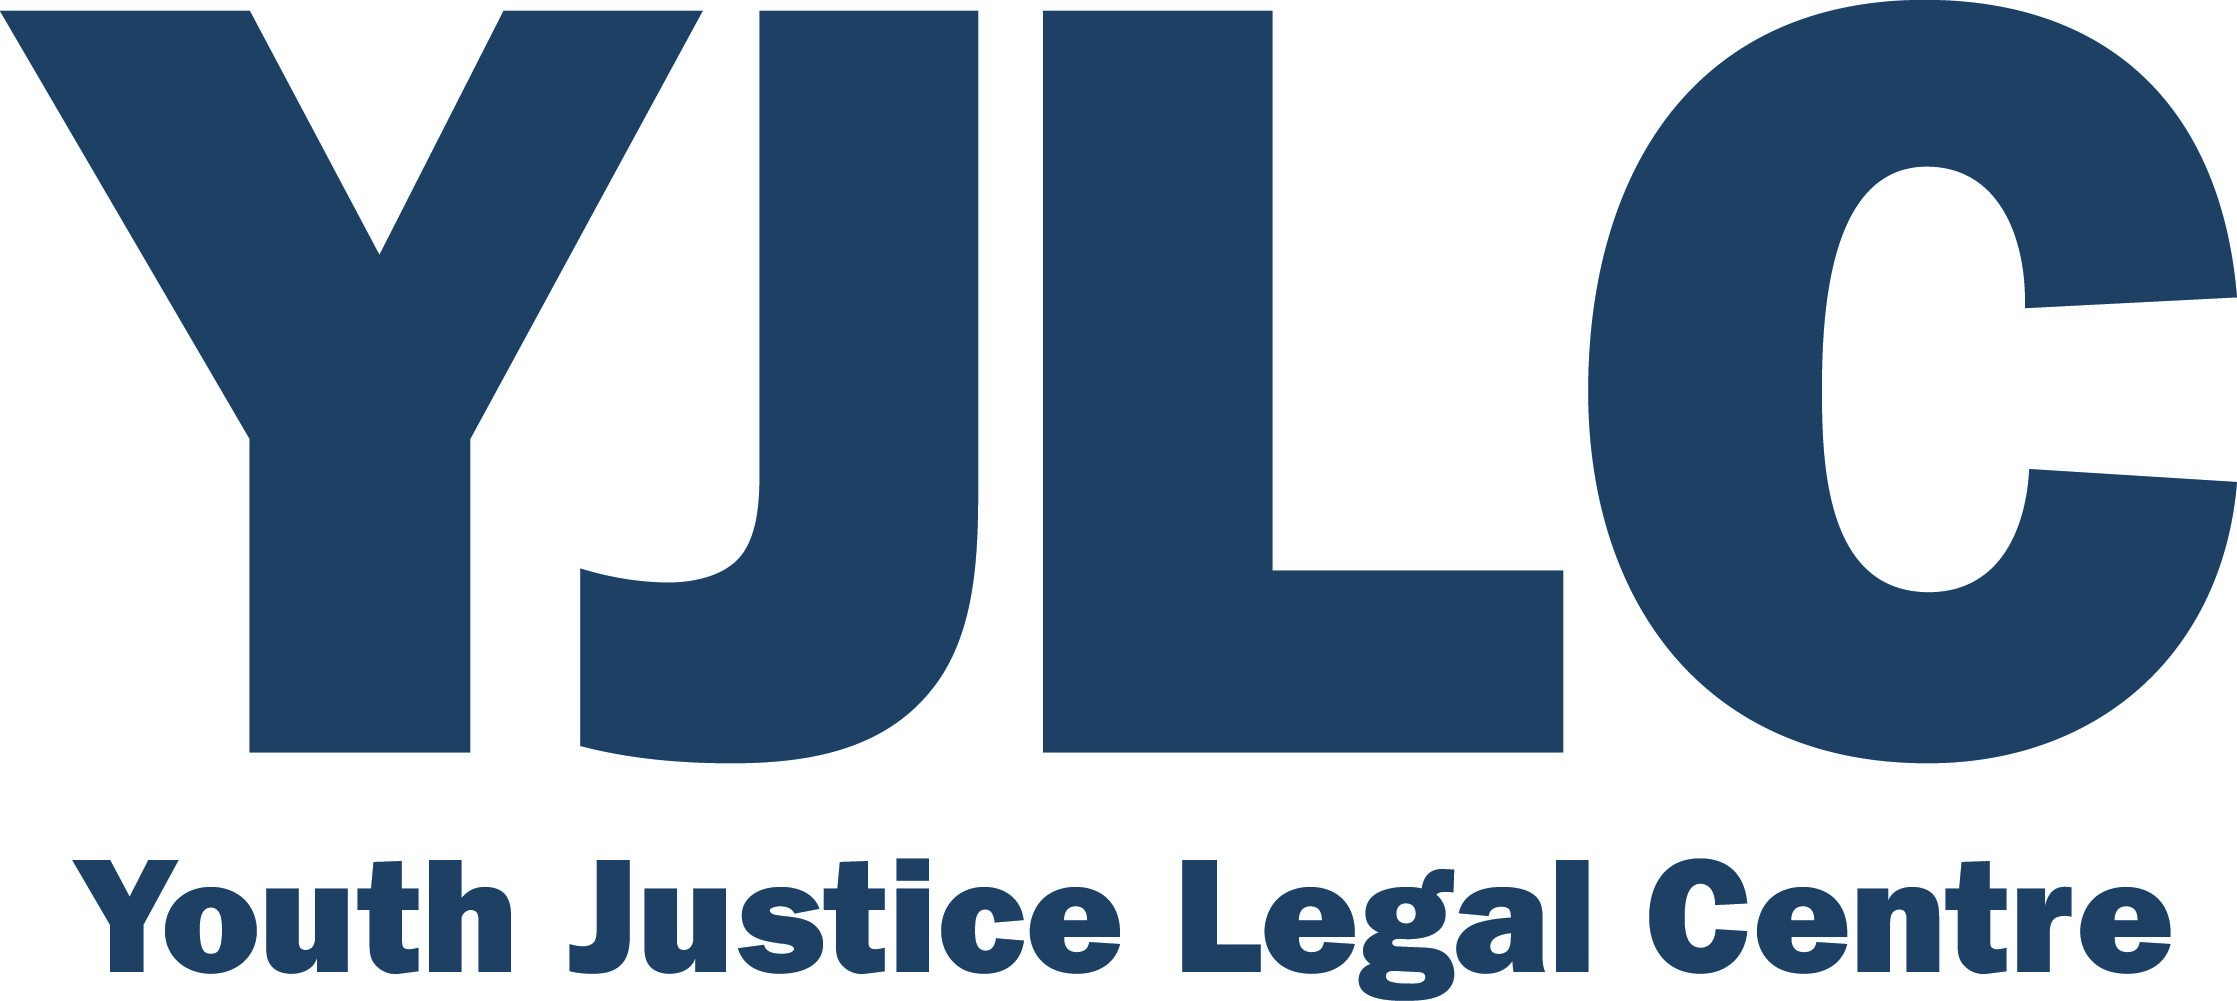 Youth Justice Legal Centre